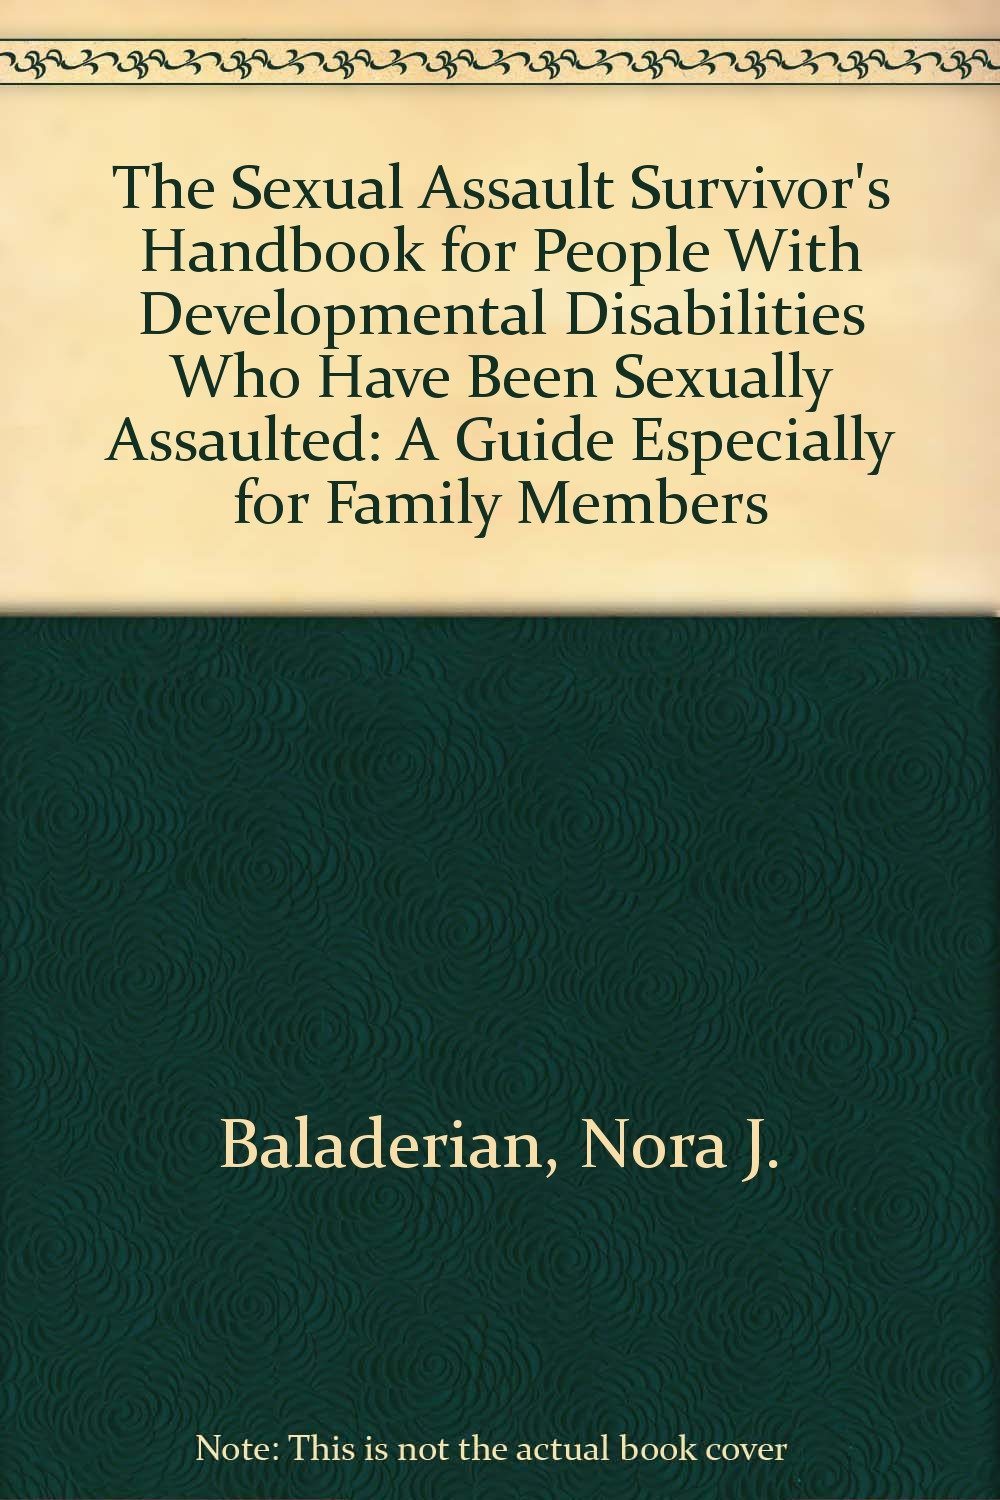 developmental disabilities and sexual assualt